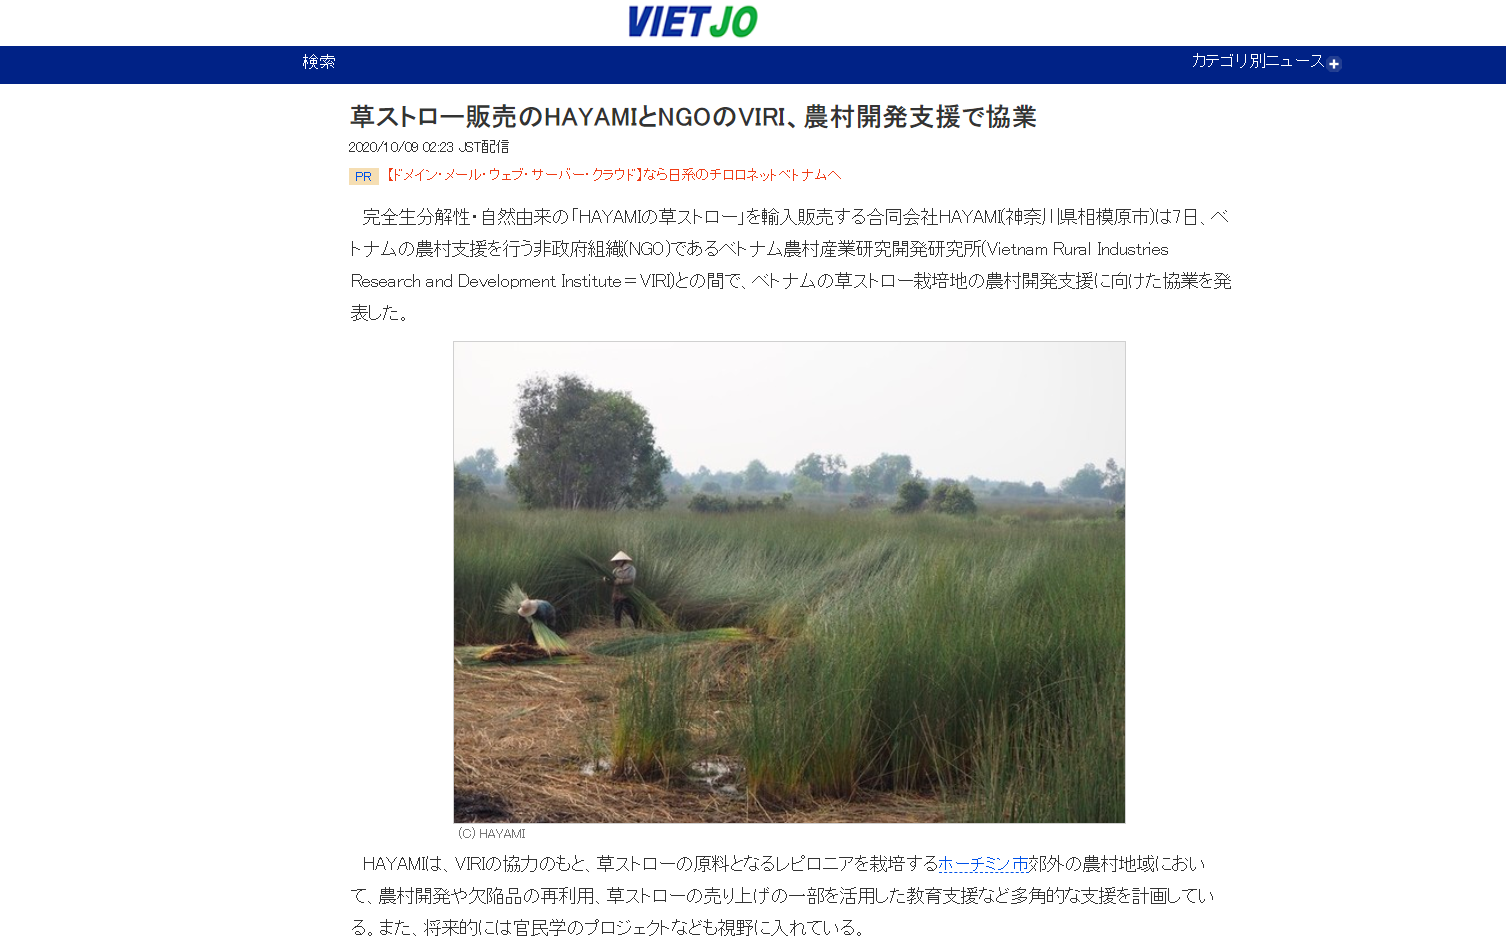 Article published on VIET JO magazine and PRTIMES magazine